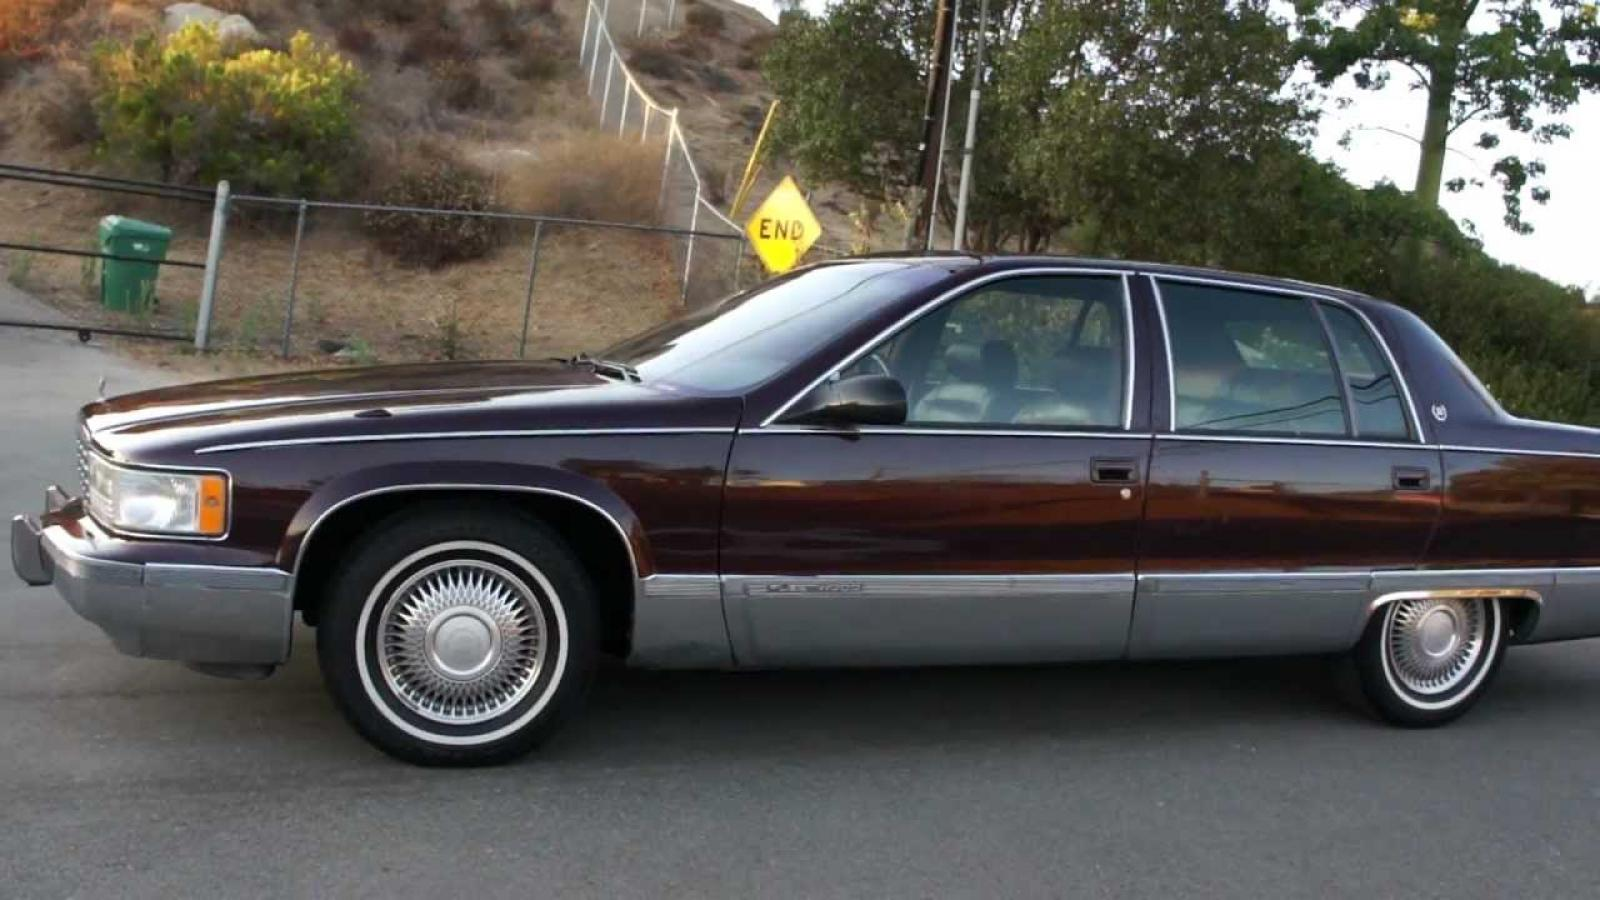 1995 cadillac fleetwood information and photos zombiedrive. Cars Review. Best American Auto & Cars Review